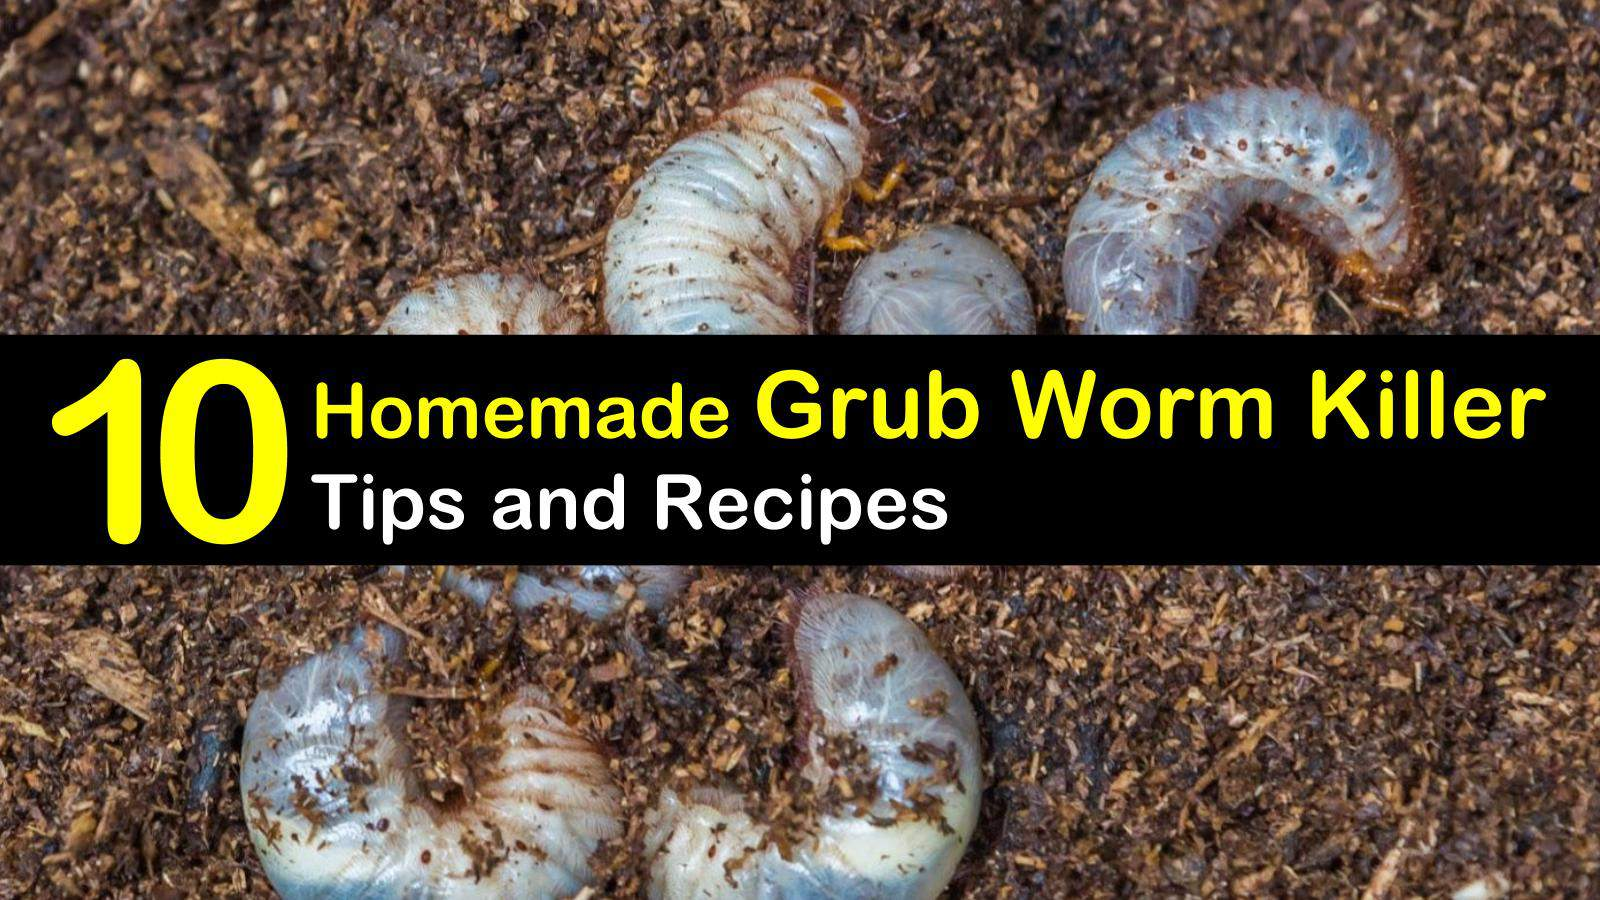 Killing Grub Worms Naturally - 10 Homemade Grub Worm Killer Tips and ...